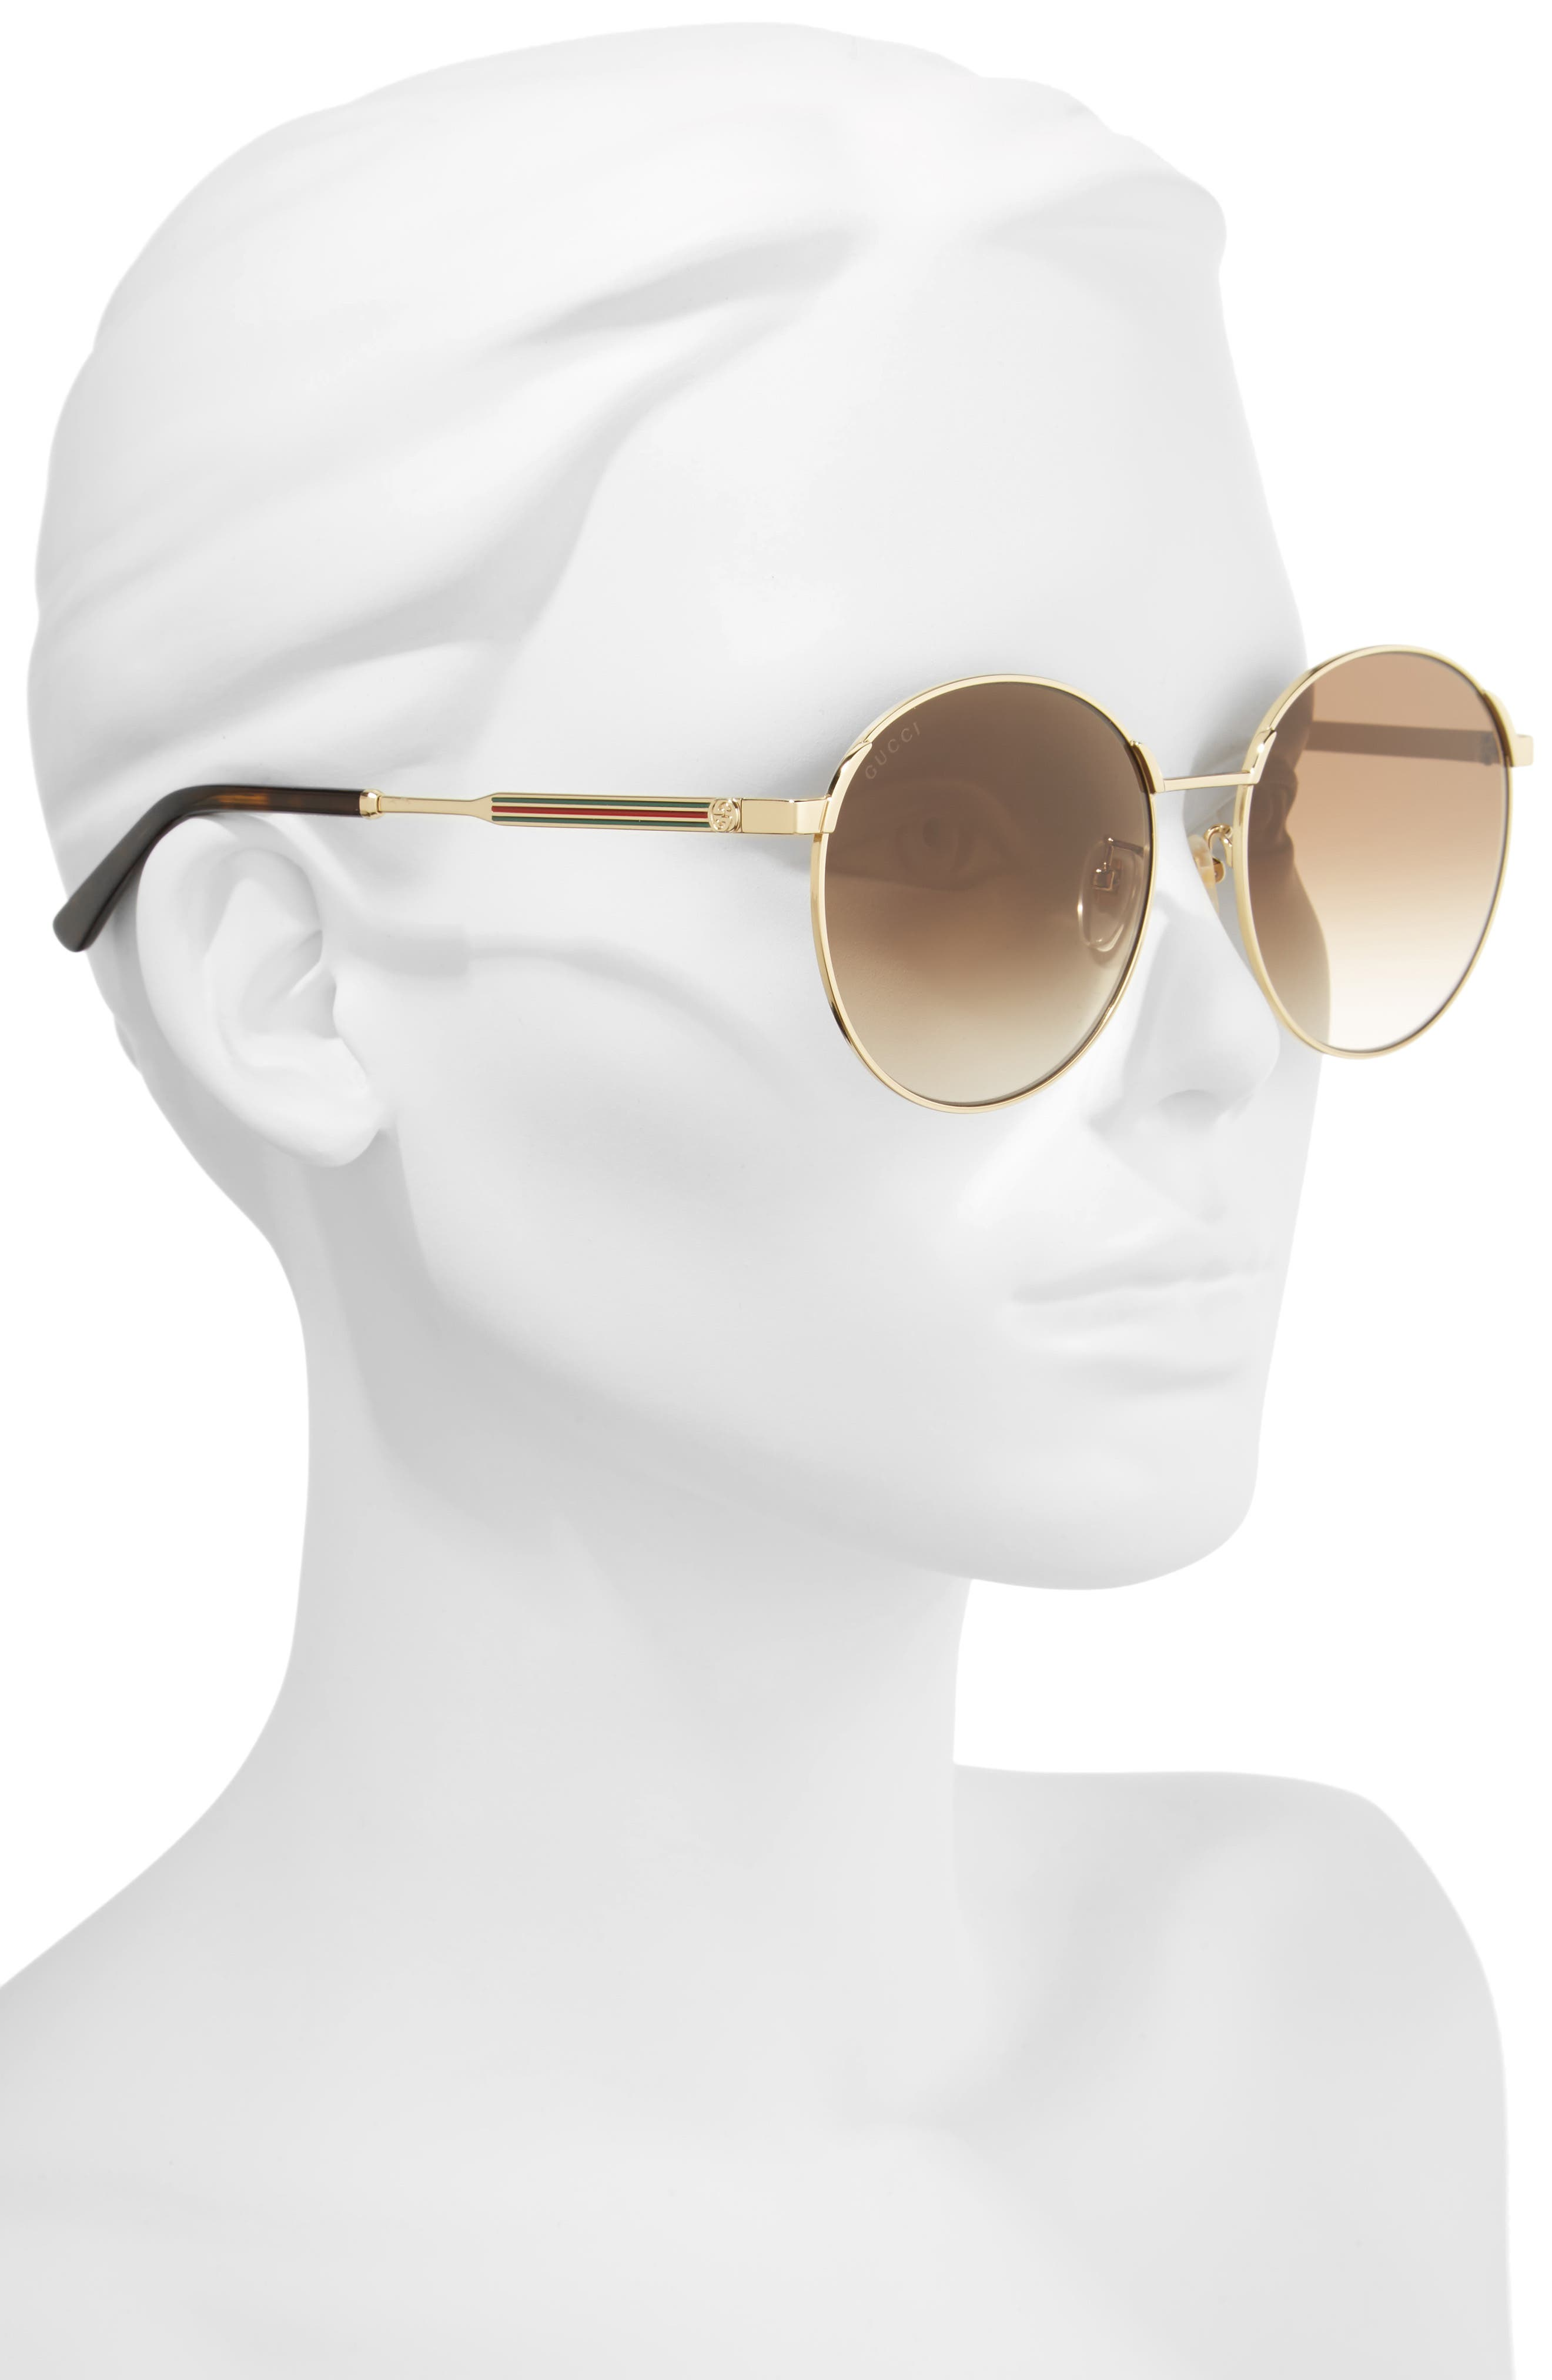 58mm Round Sunglasses,                             Alternate thumbnail 2, color,                             Gold/ Brown